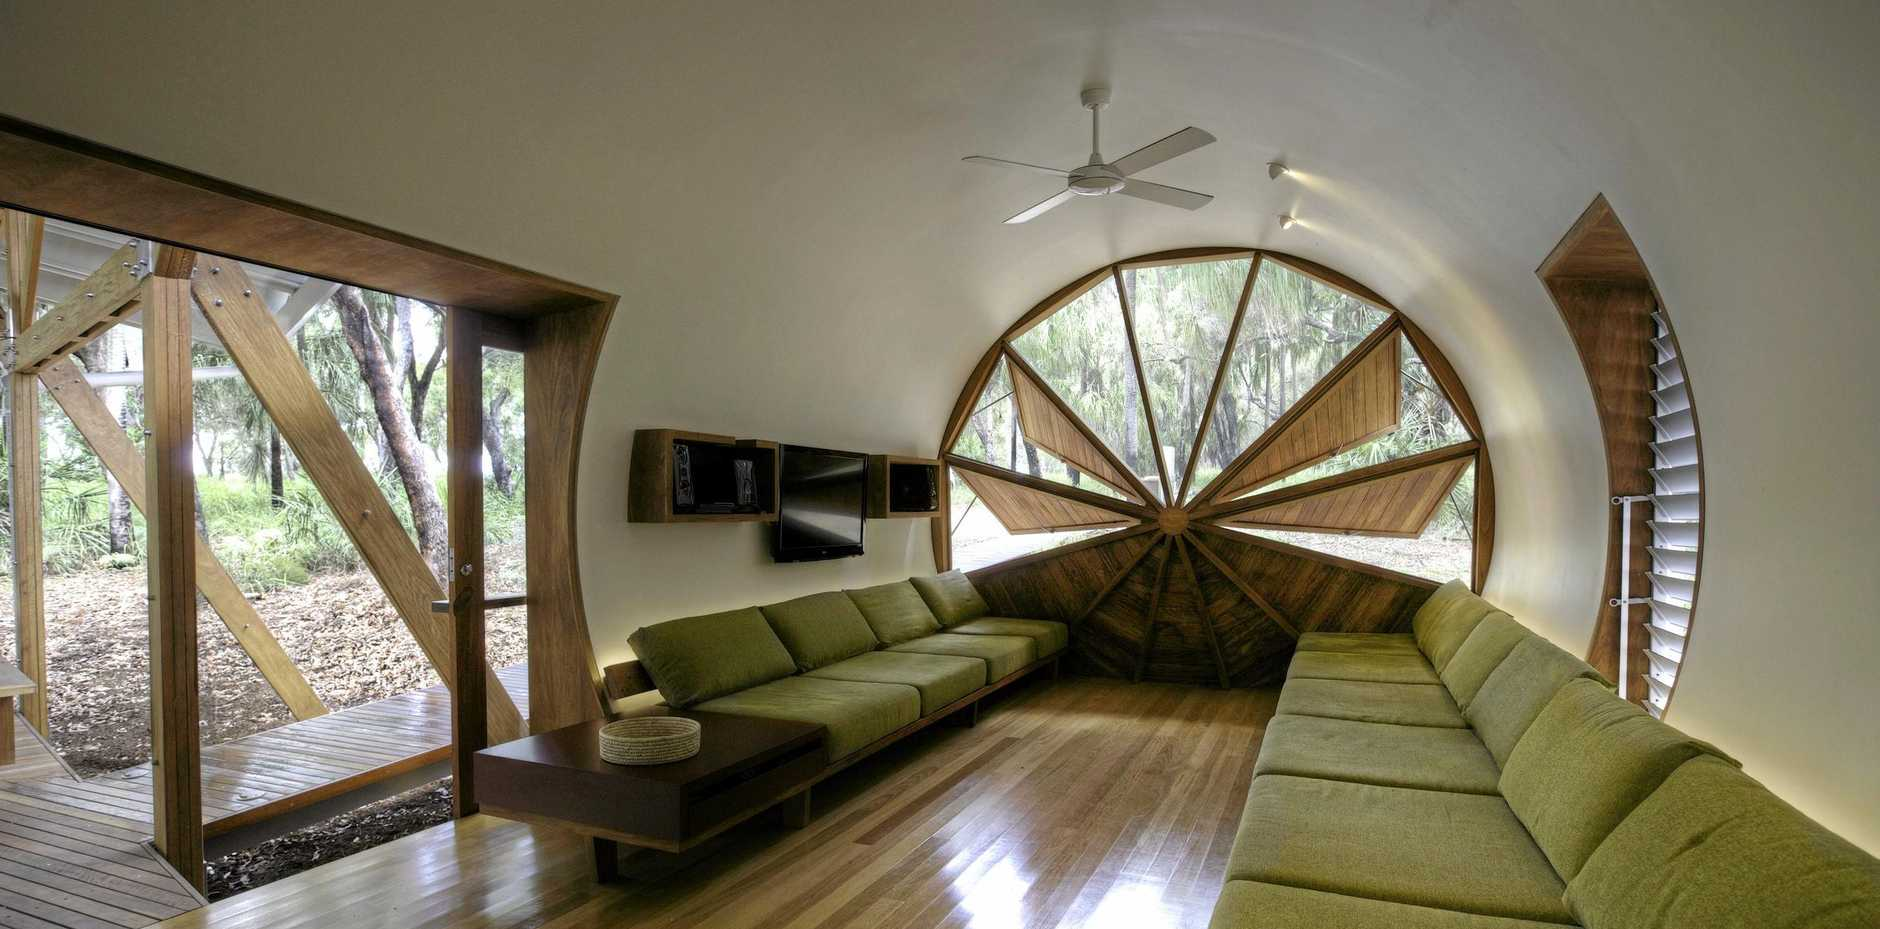 OUTSIDE IN: The Pods is a uniquely designed beach house set on an acre of pristine native forest.